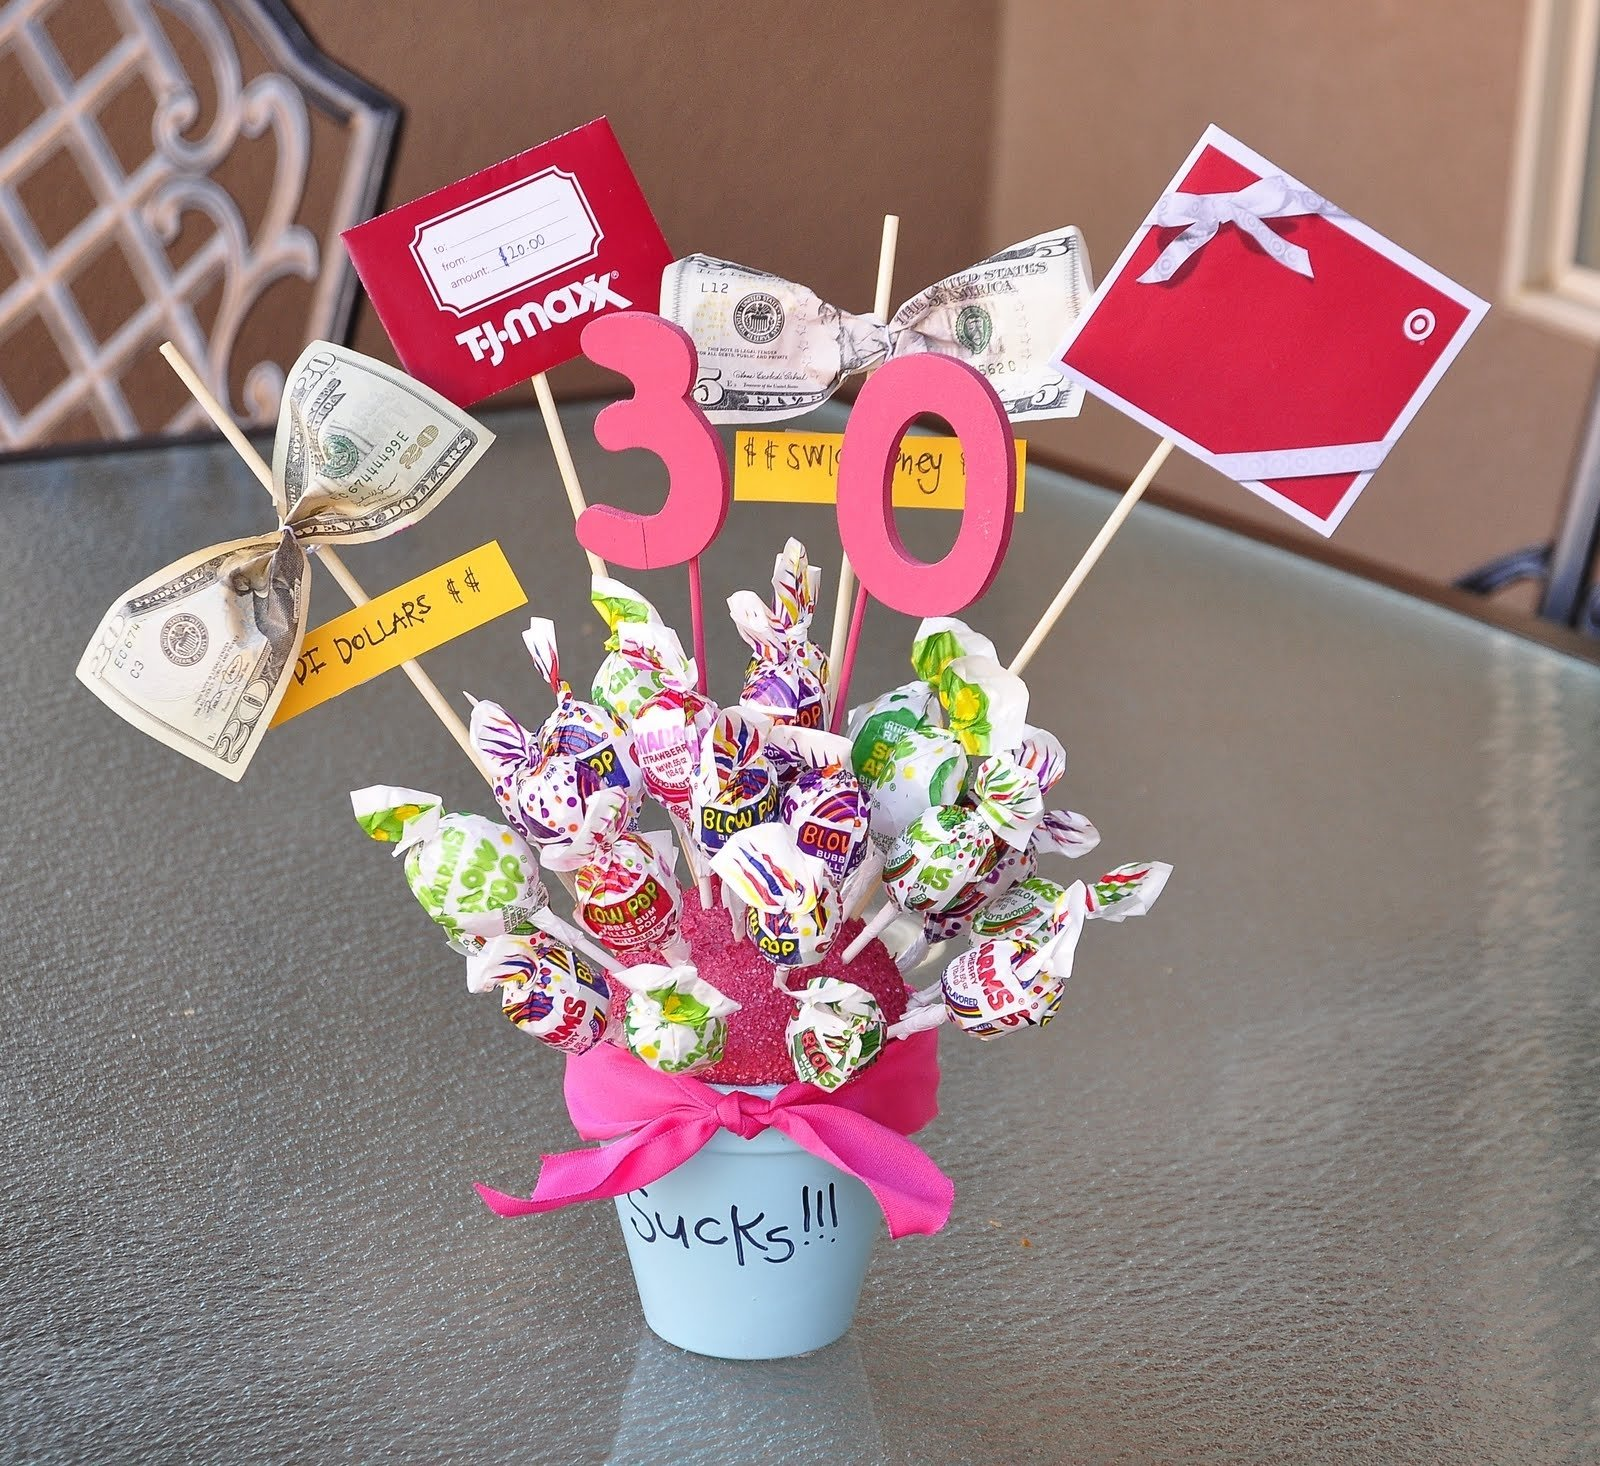 10 Unique Gift Ideas For Girl Best Friend 30th Birthday Party Birthdays And 1